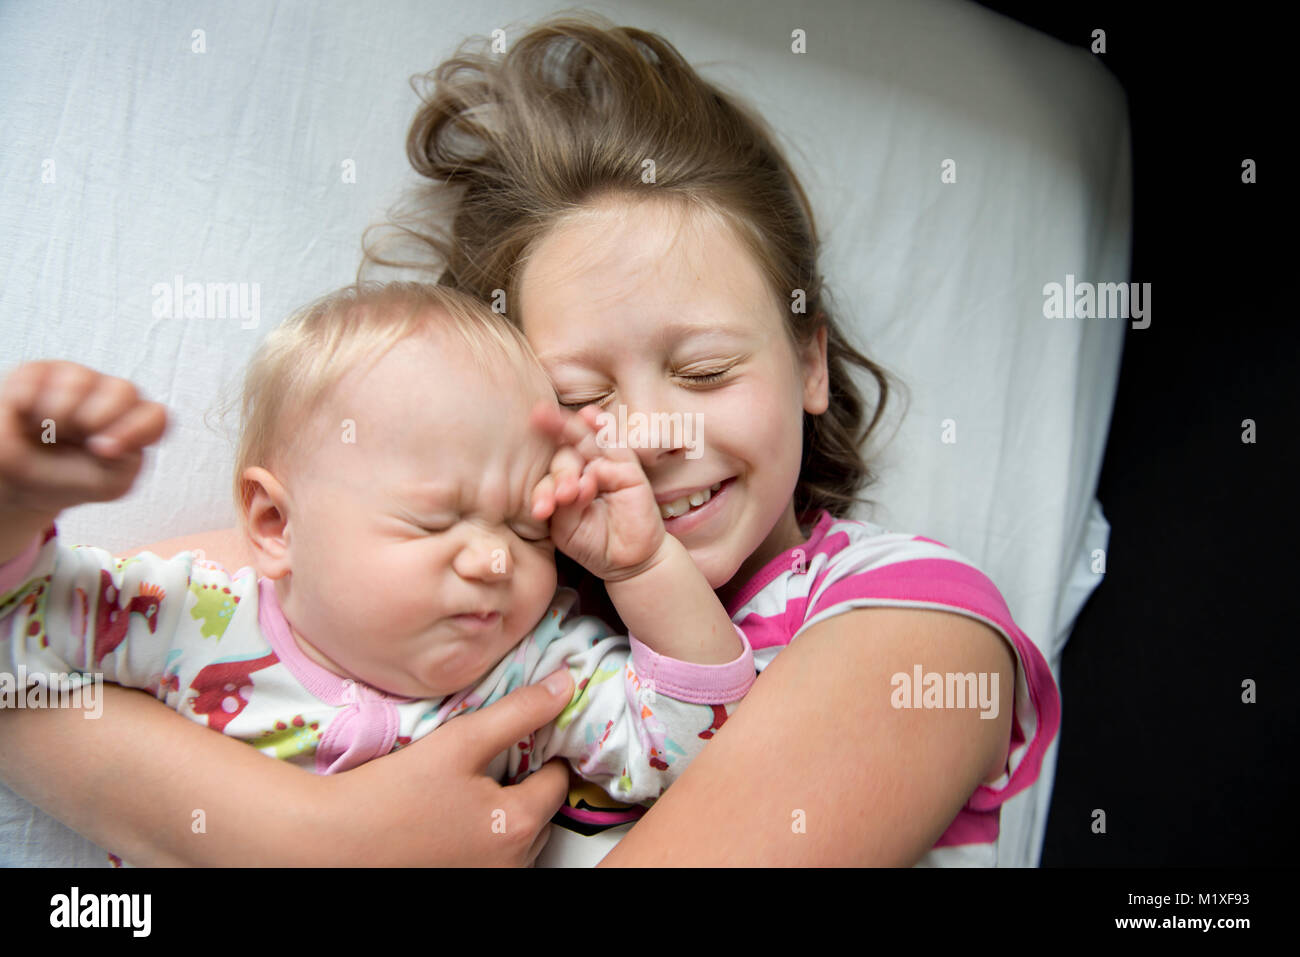 Girl lying down with her baby sister in Sweden - Stock Image